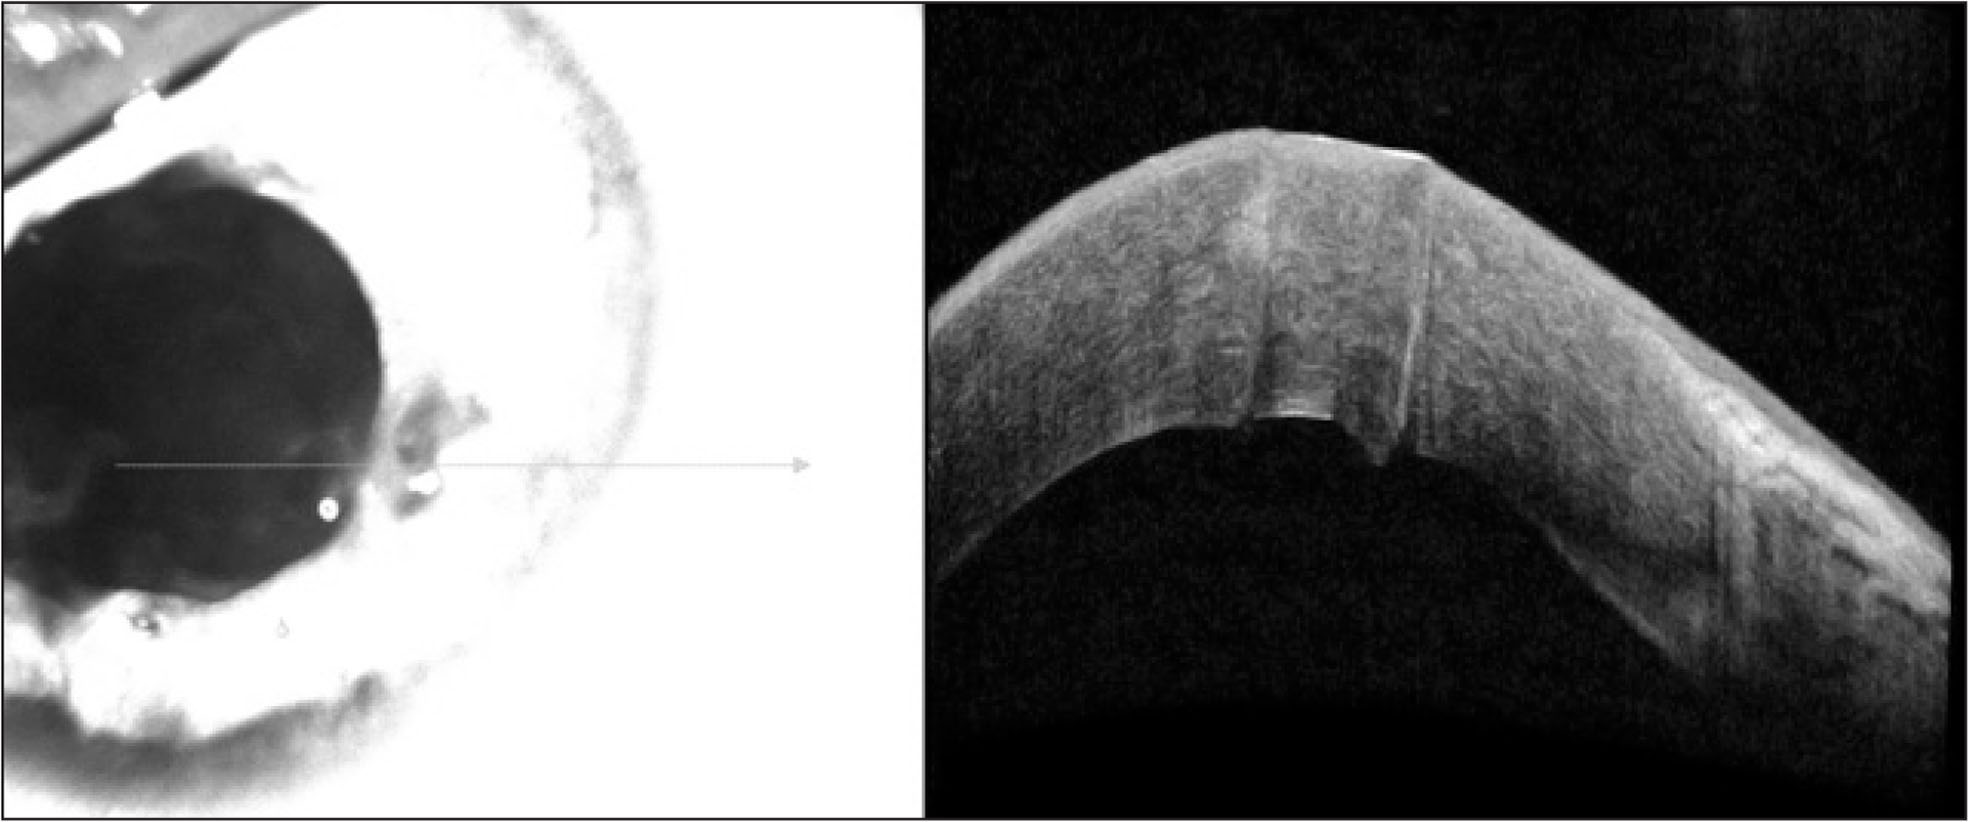 Anterior segment optical coherence tomography of the patient's left eye with corneal lesions in November 2011.